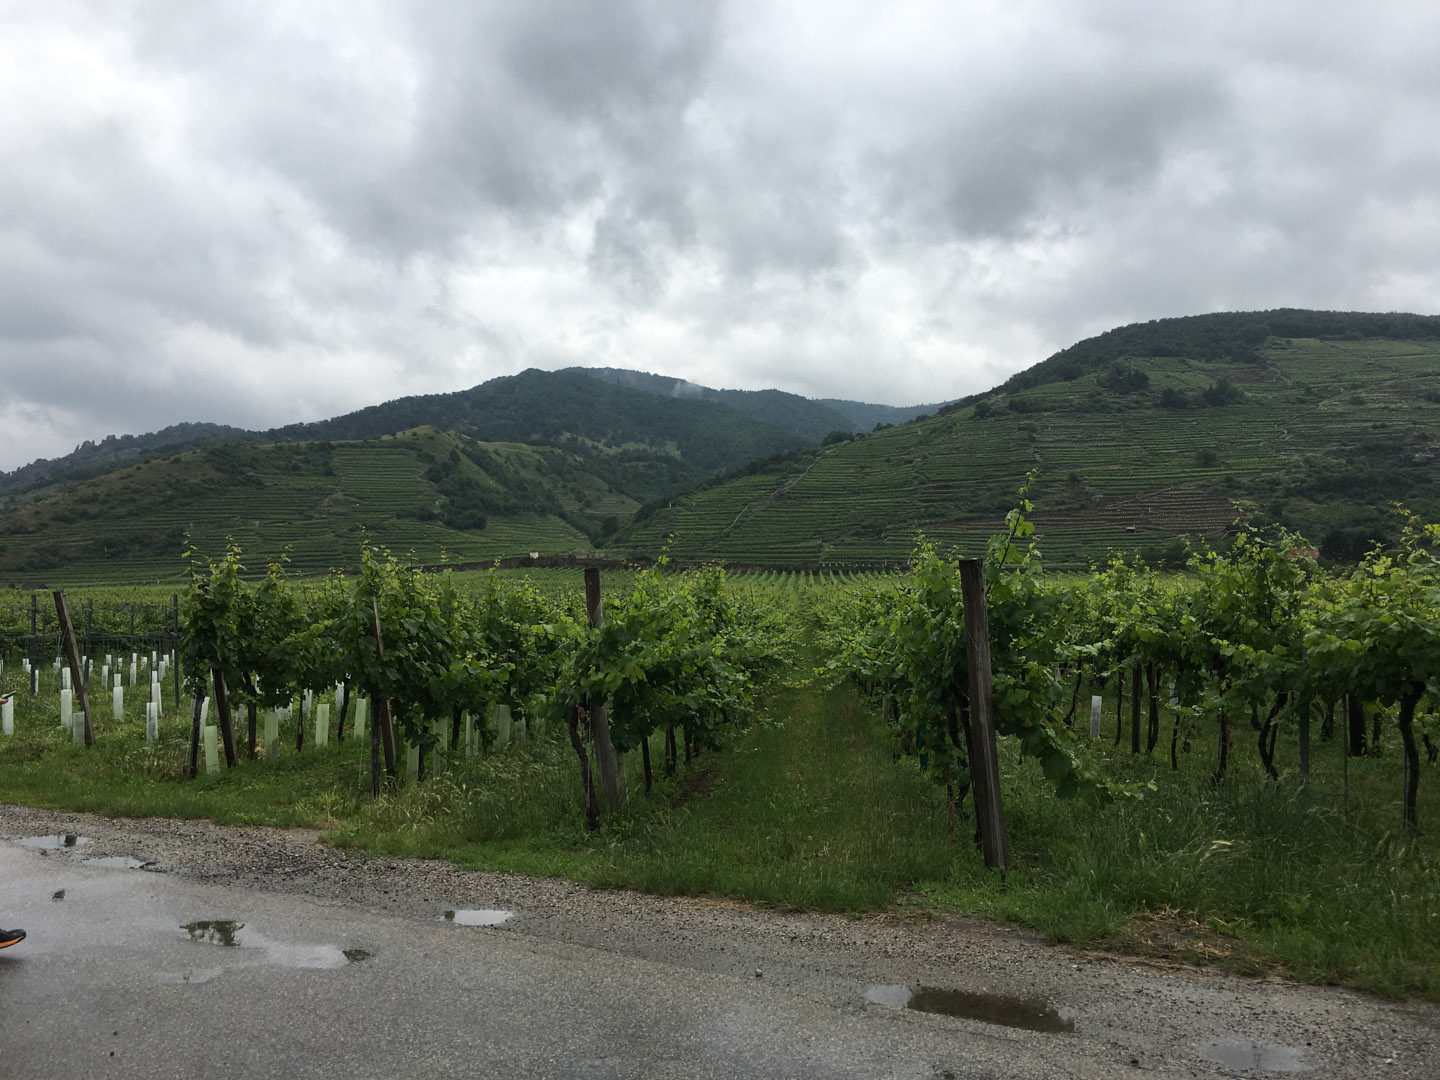 XWP team rainy bike ride through the Wachau Valley, Vienna